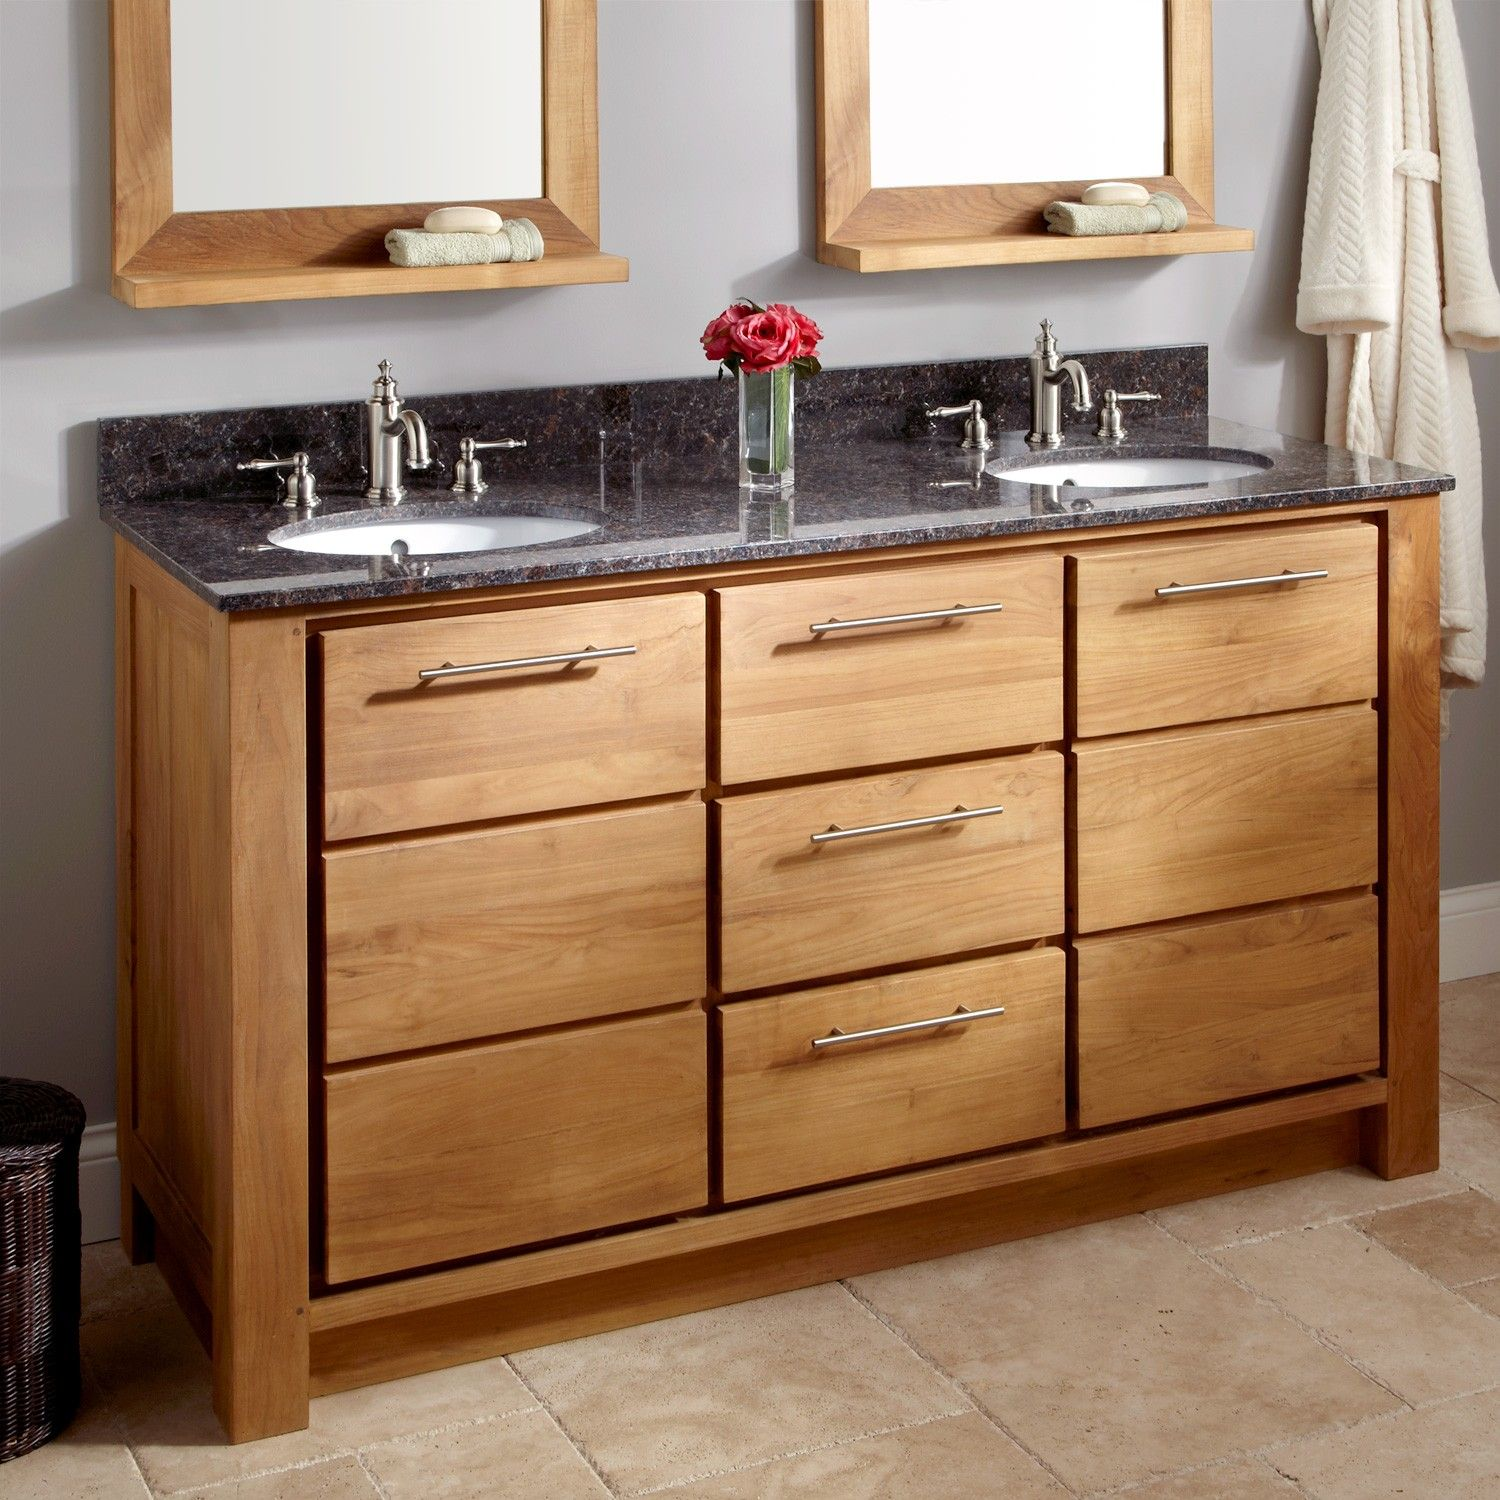 60 Venica Teak Double Vanity For Undermount Sinks Bathroom Vanities Bathroom Teak Vanity Teak Bathroom Vanity Bathroom Sink Vanity